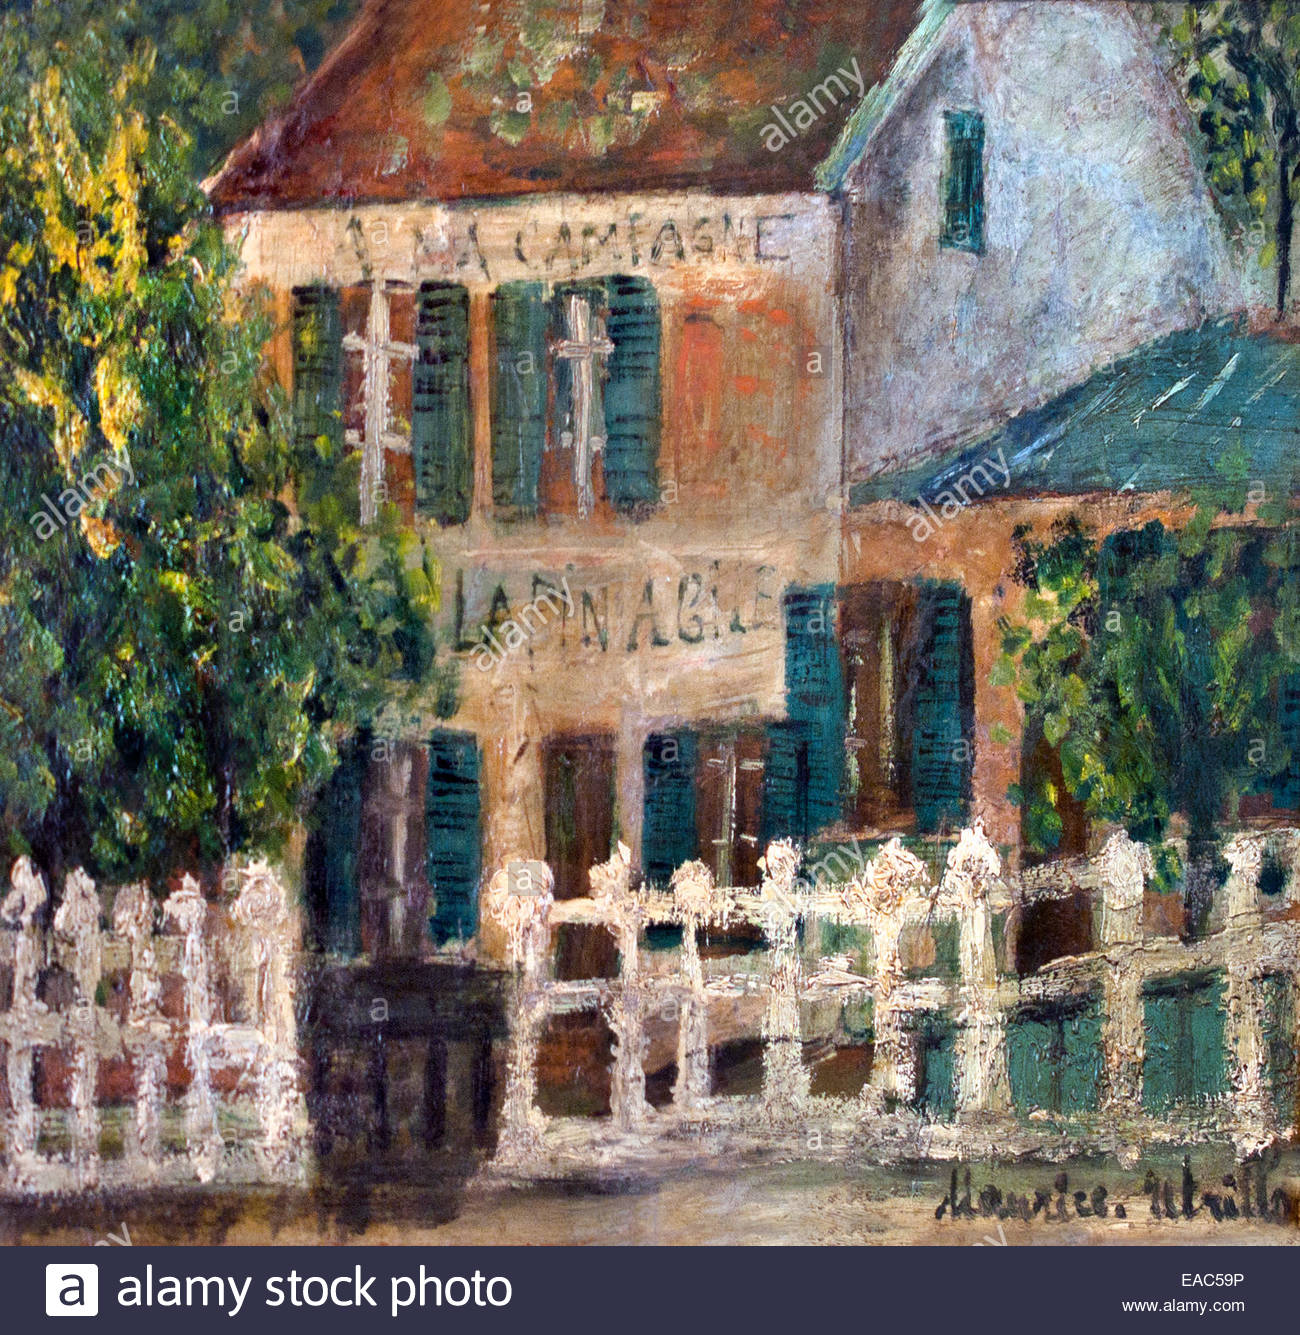 Pittore Francese Maurice Montmartre Di Maurice Utrillo Francia Pittore Francese Foto